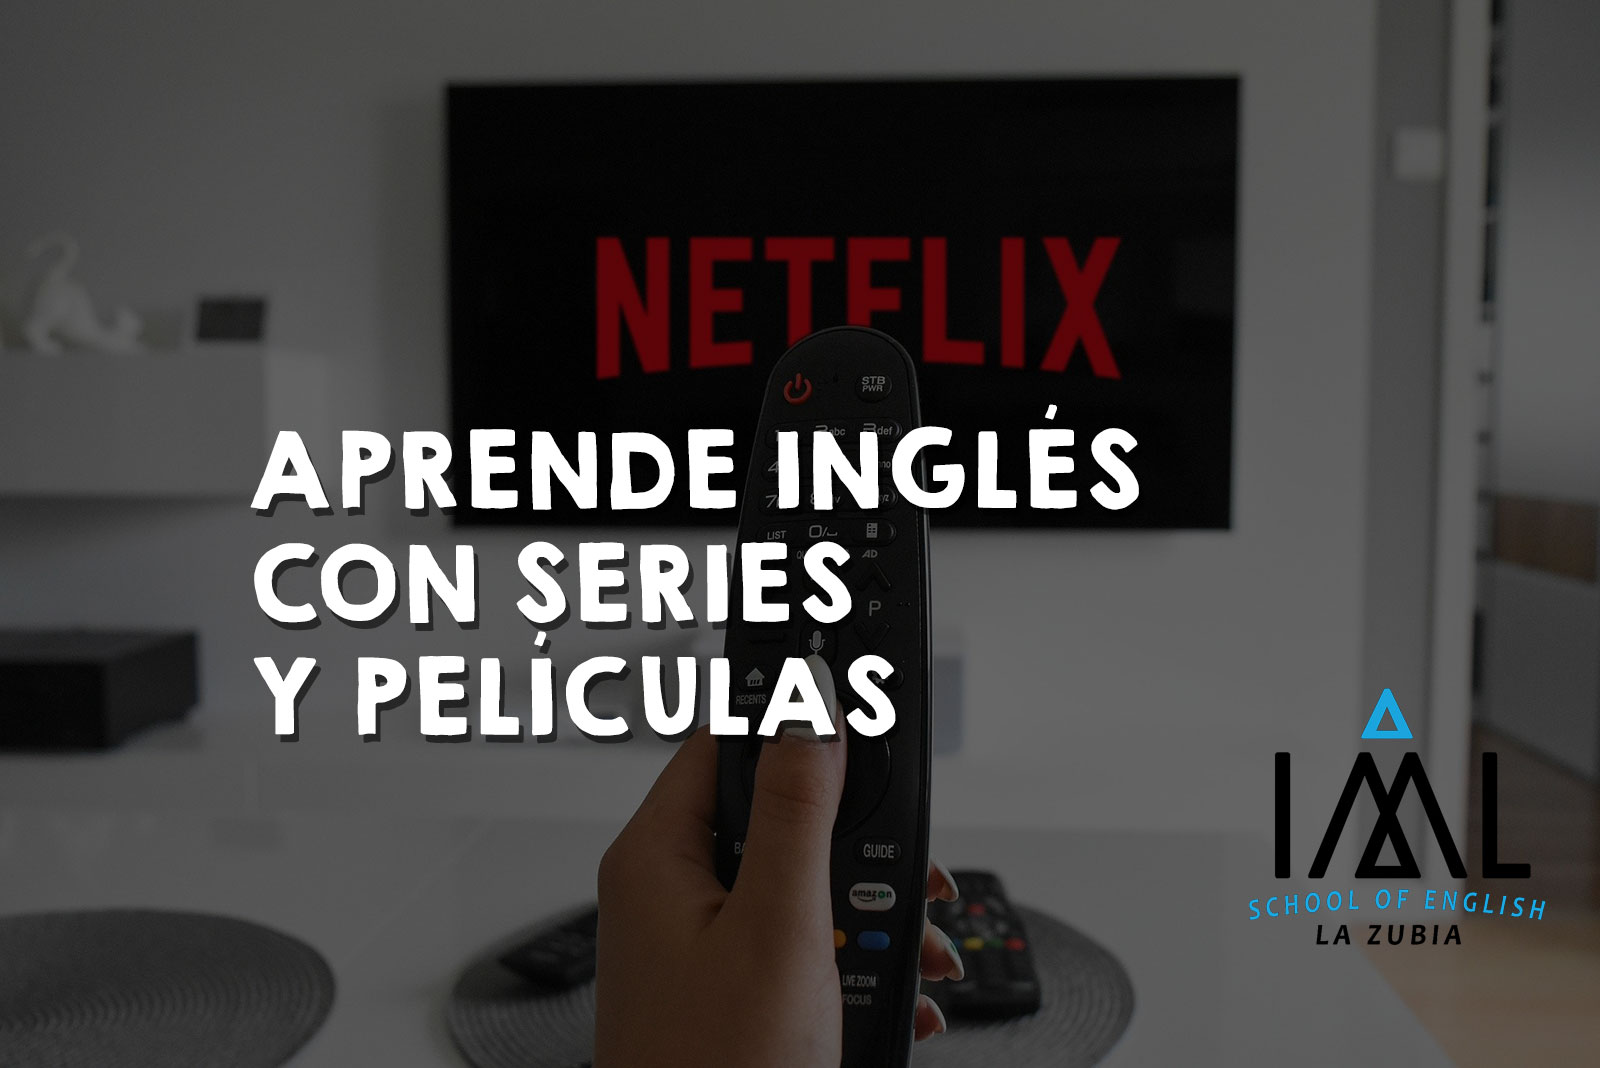 series y pelis en ingles